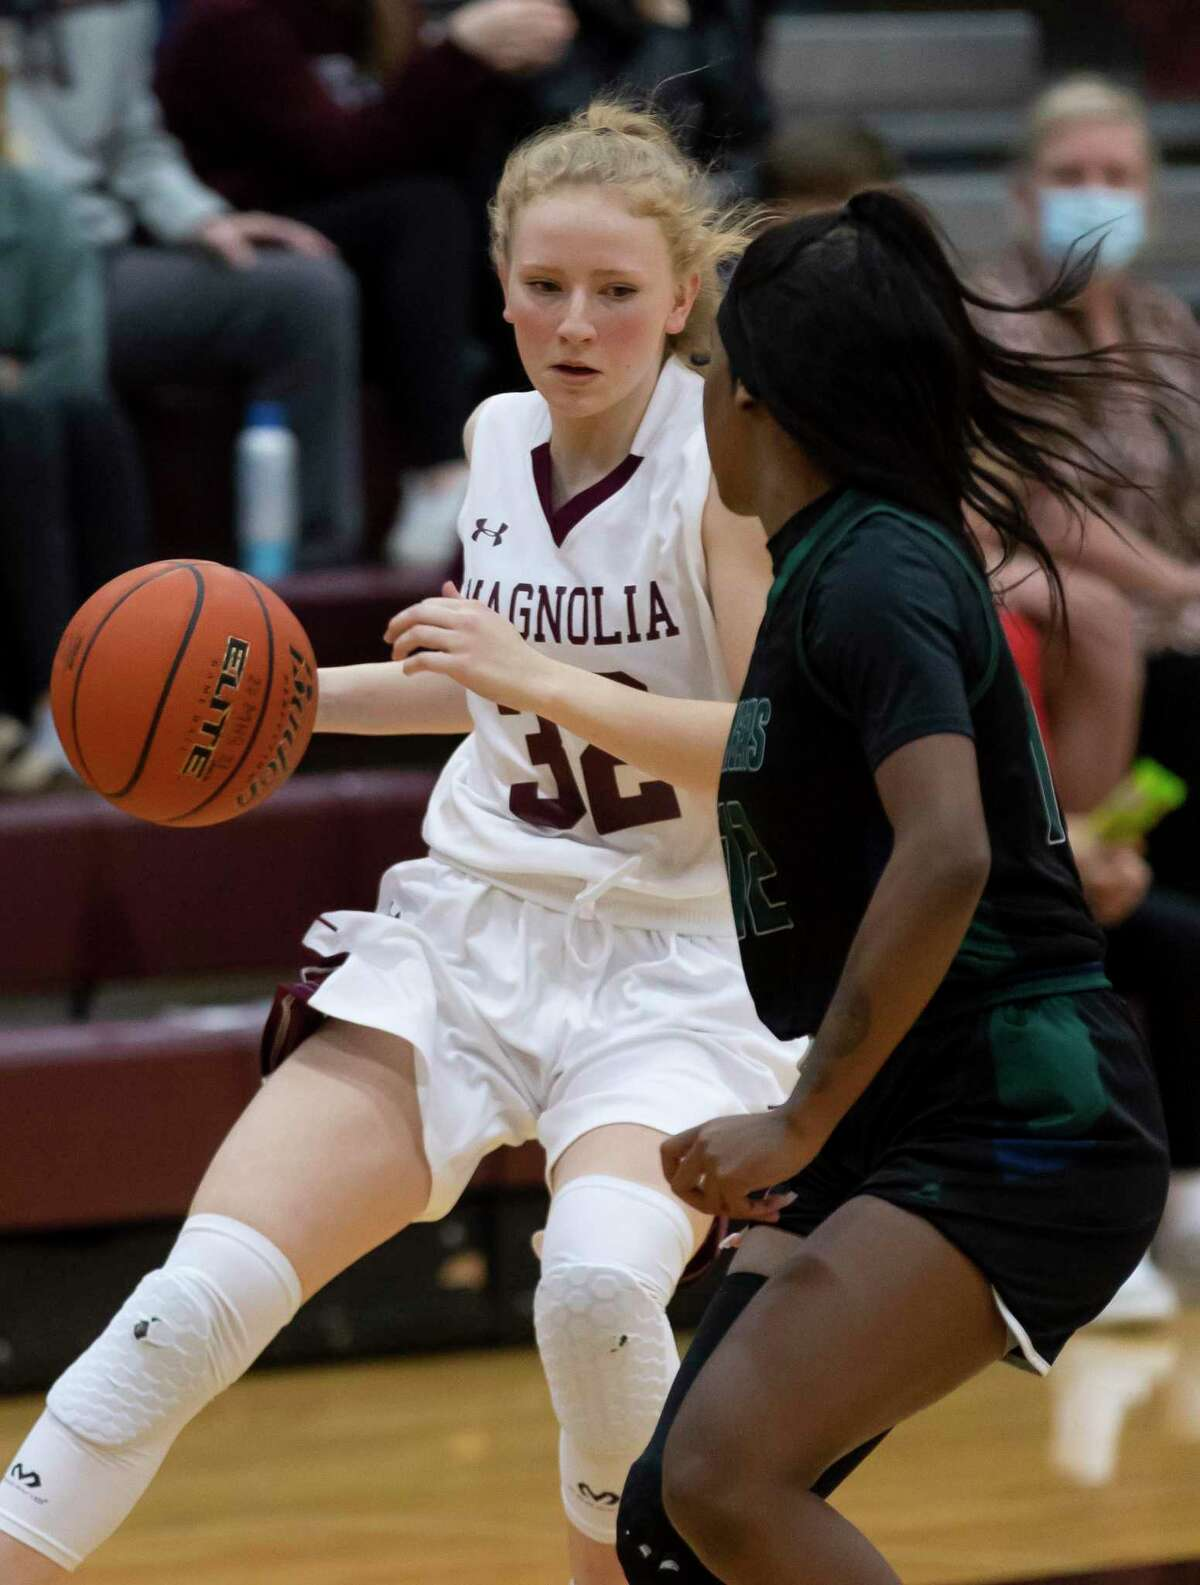 Magnolia guard Emma Rowan (32) drives the ball while under pressure from Bryan Rudder Bryanna Turner (12) during the first quarter of a District 19-5A girls basketball game at Magnolia High School, Tuesday, Jan 12, 2021, in Magnolia.